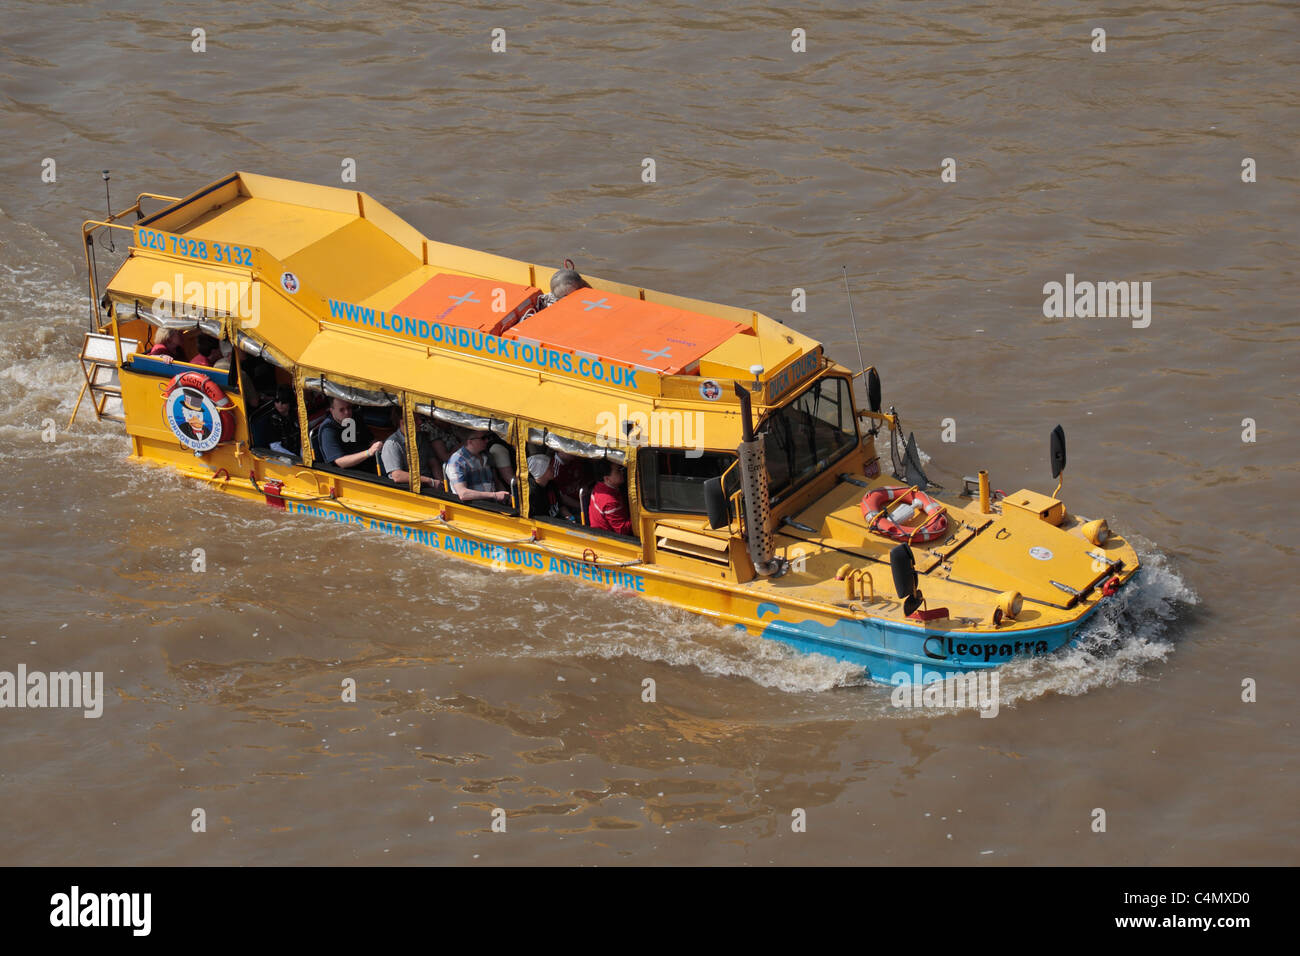 A WWII DUK-W amphibious vehicle (or Duck) converted into a tourist touring bus on the River Thames, London, UK. - Stock Image